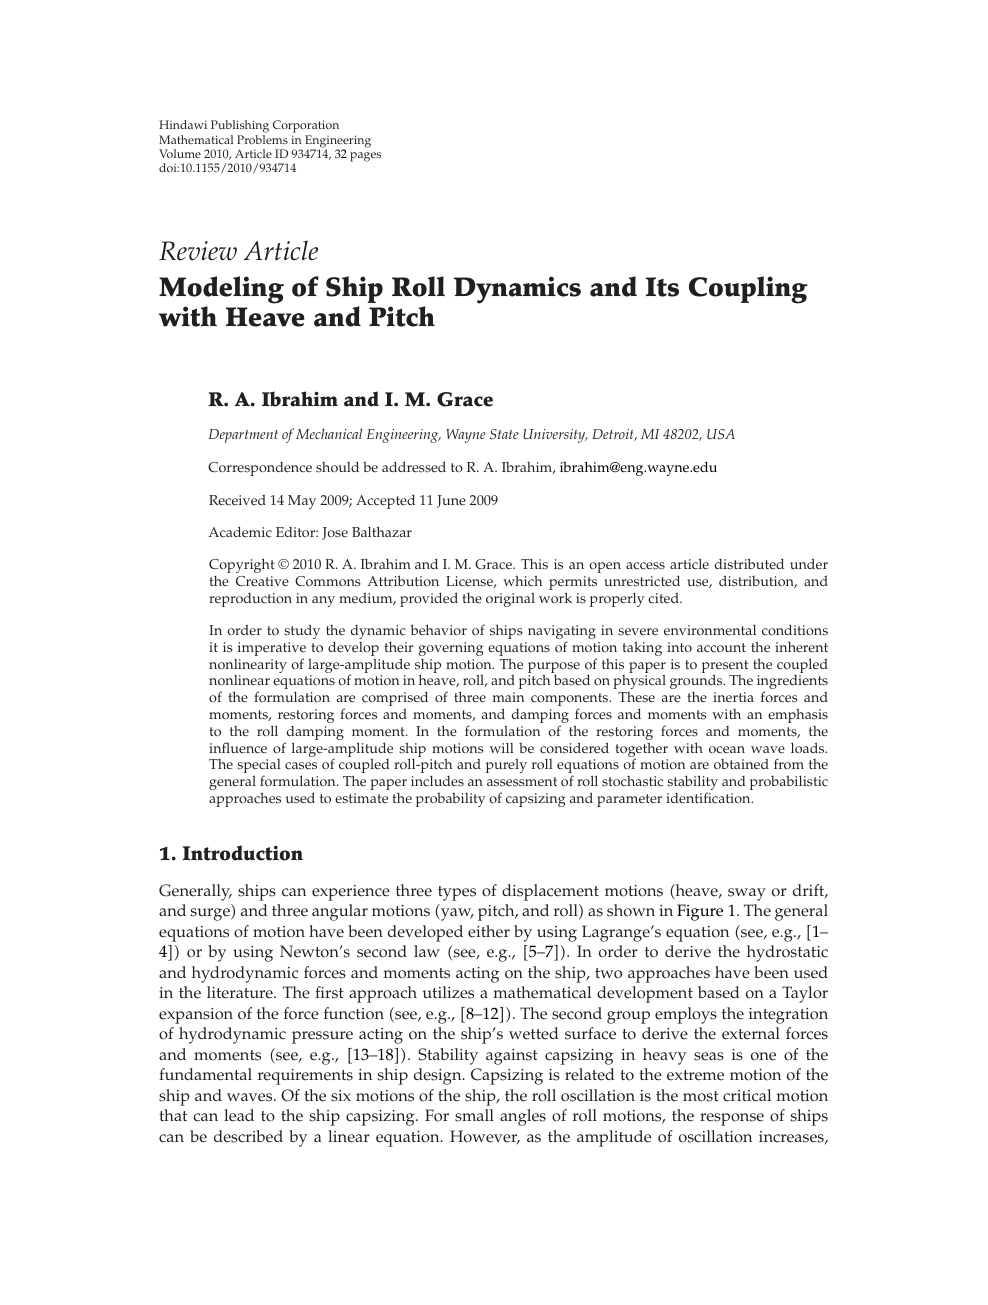 Modeling of Ship Roll Dynamics and Its Coupling with Heave